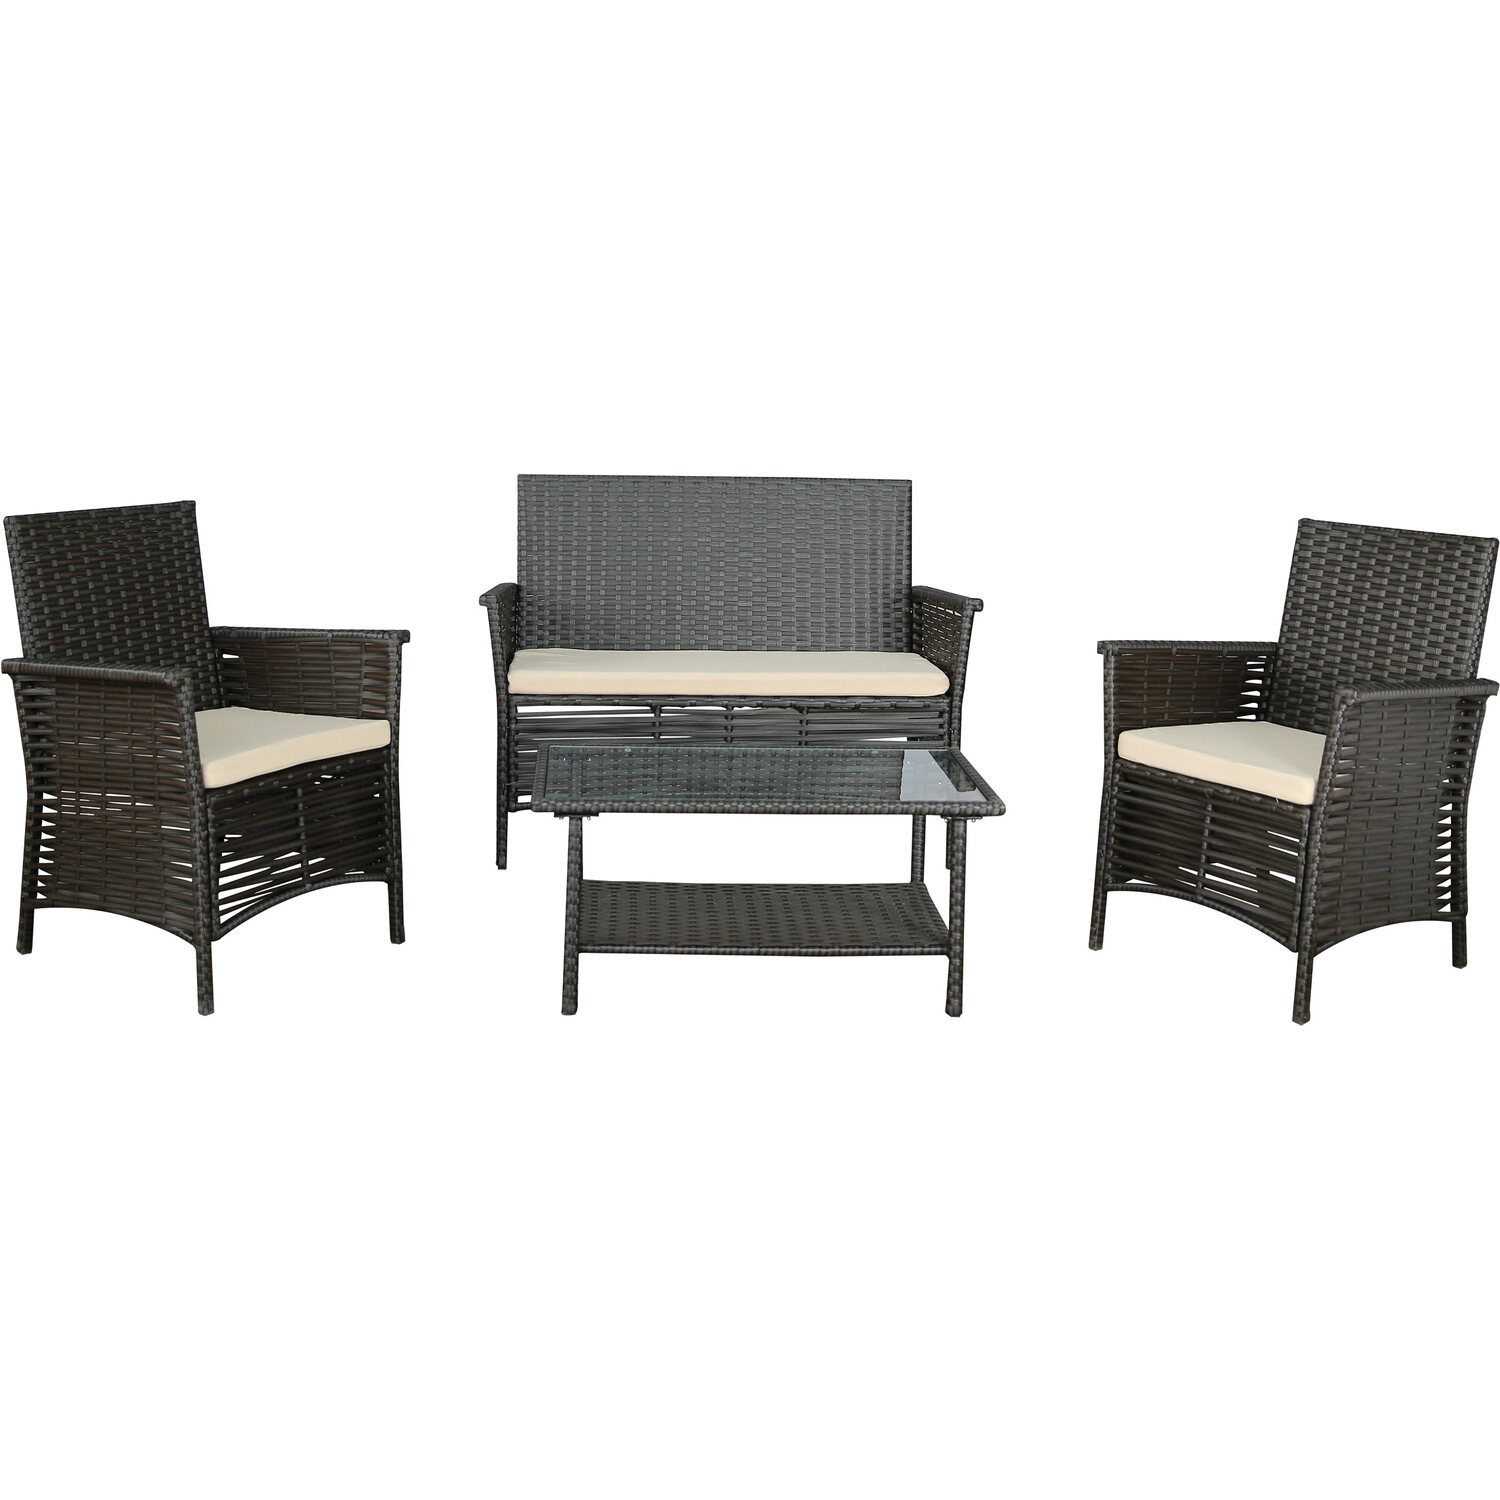 gartenfreude sitzgruppe polyrattan 7 tlg bicolour braun kaufen bei obi. Black Bedroom Furniture Sets. Home Design Ideas